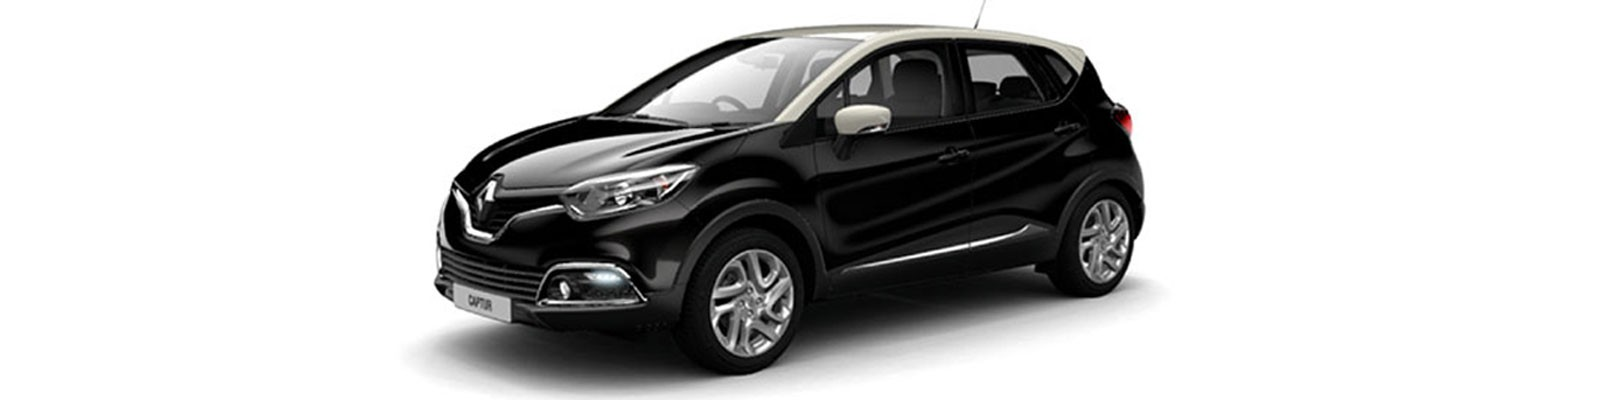 renault captur vehicle accessories 4x4 accessories tyres. Black Bedroom Furniture Sets. Home Design Ideas